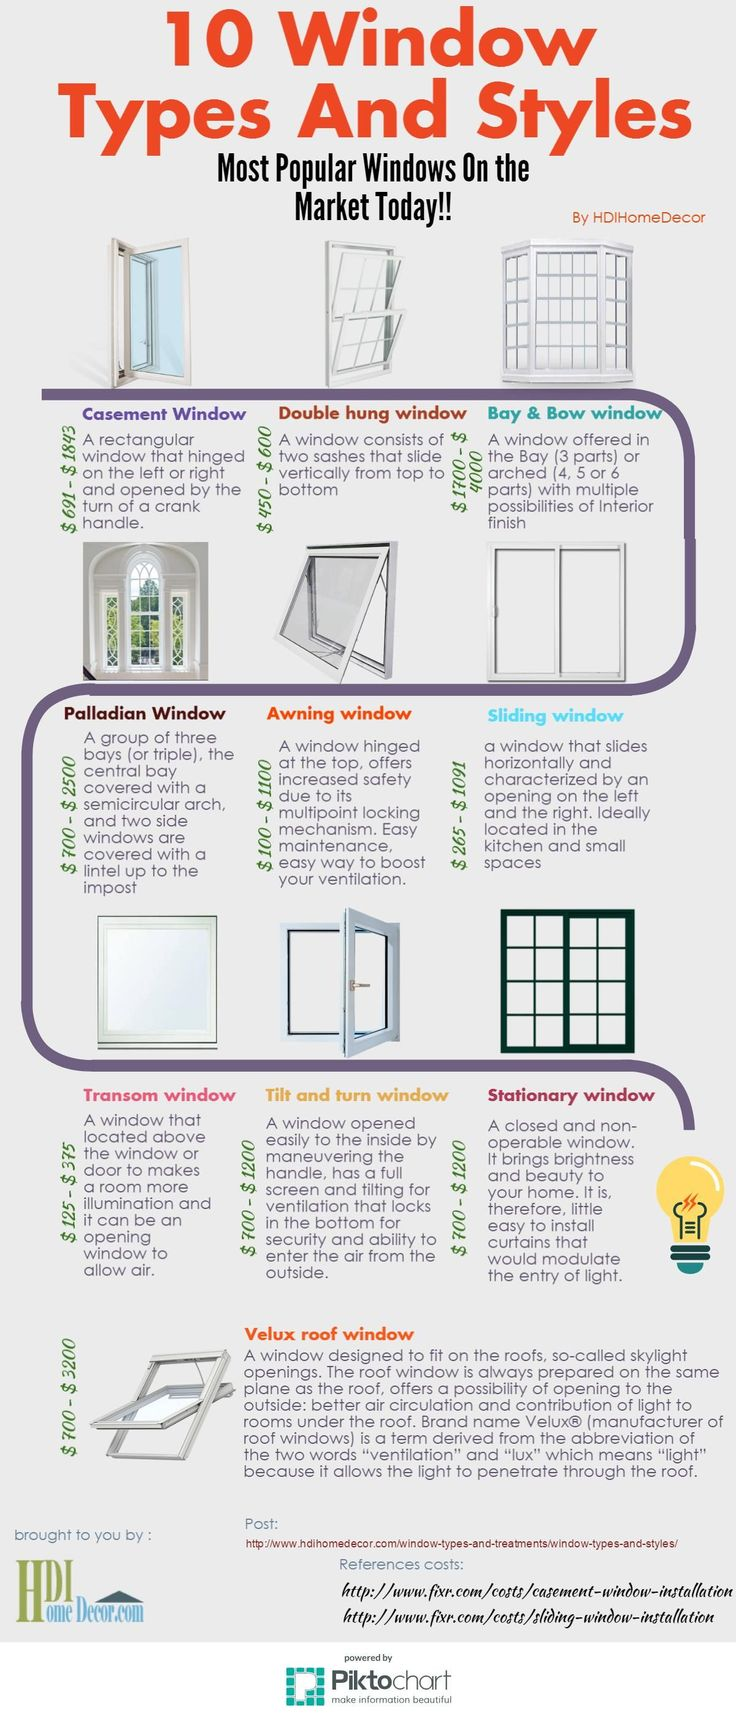 Types of residential windows - Top 10 Window Types And Styles Common Designs In Homes Today